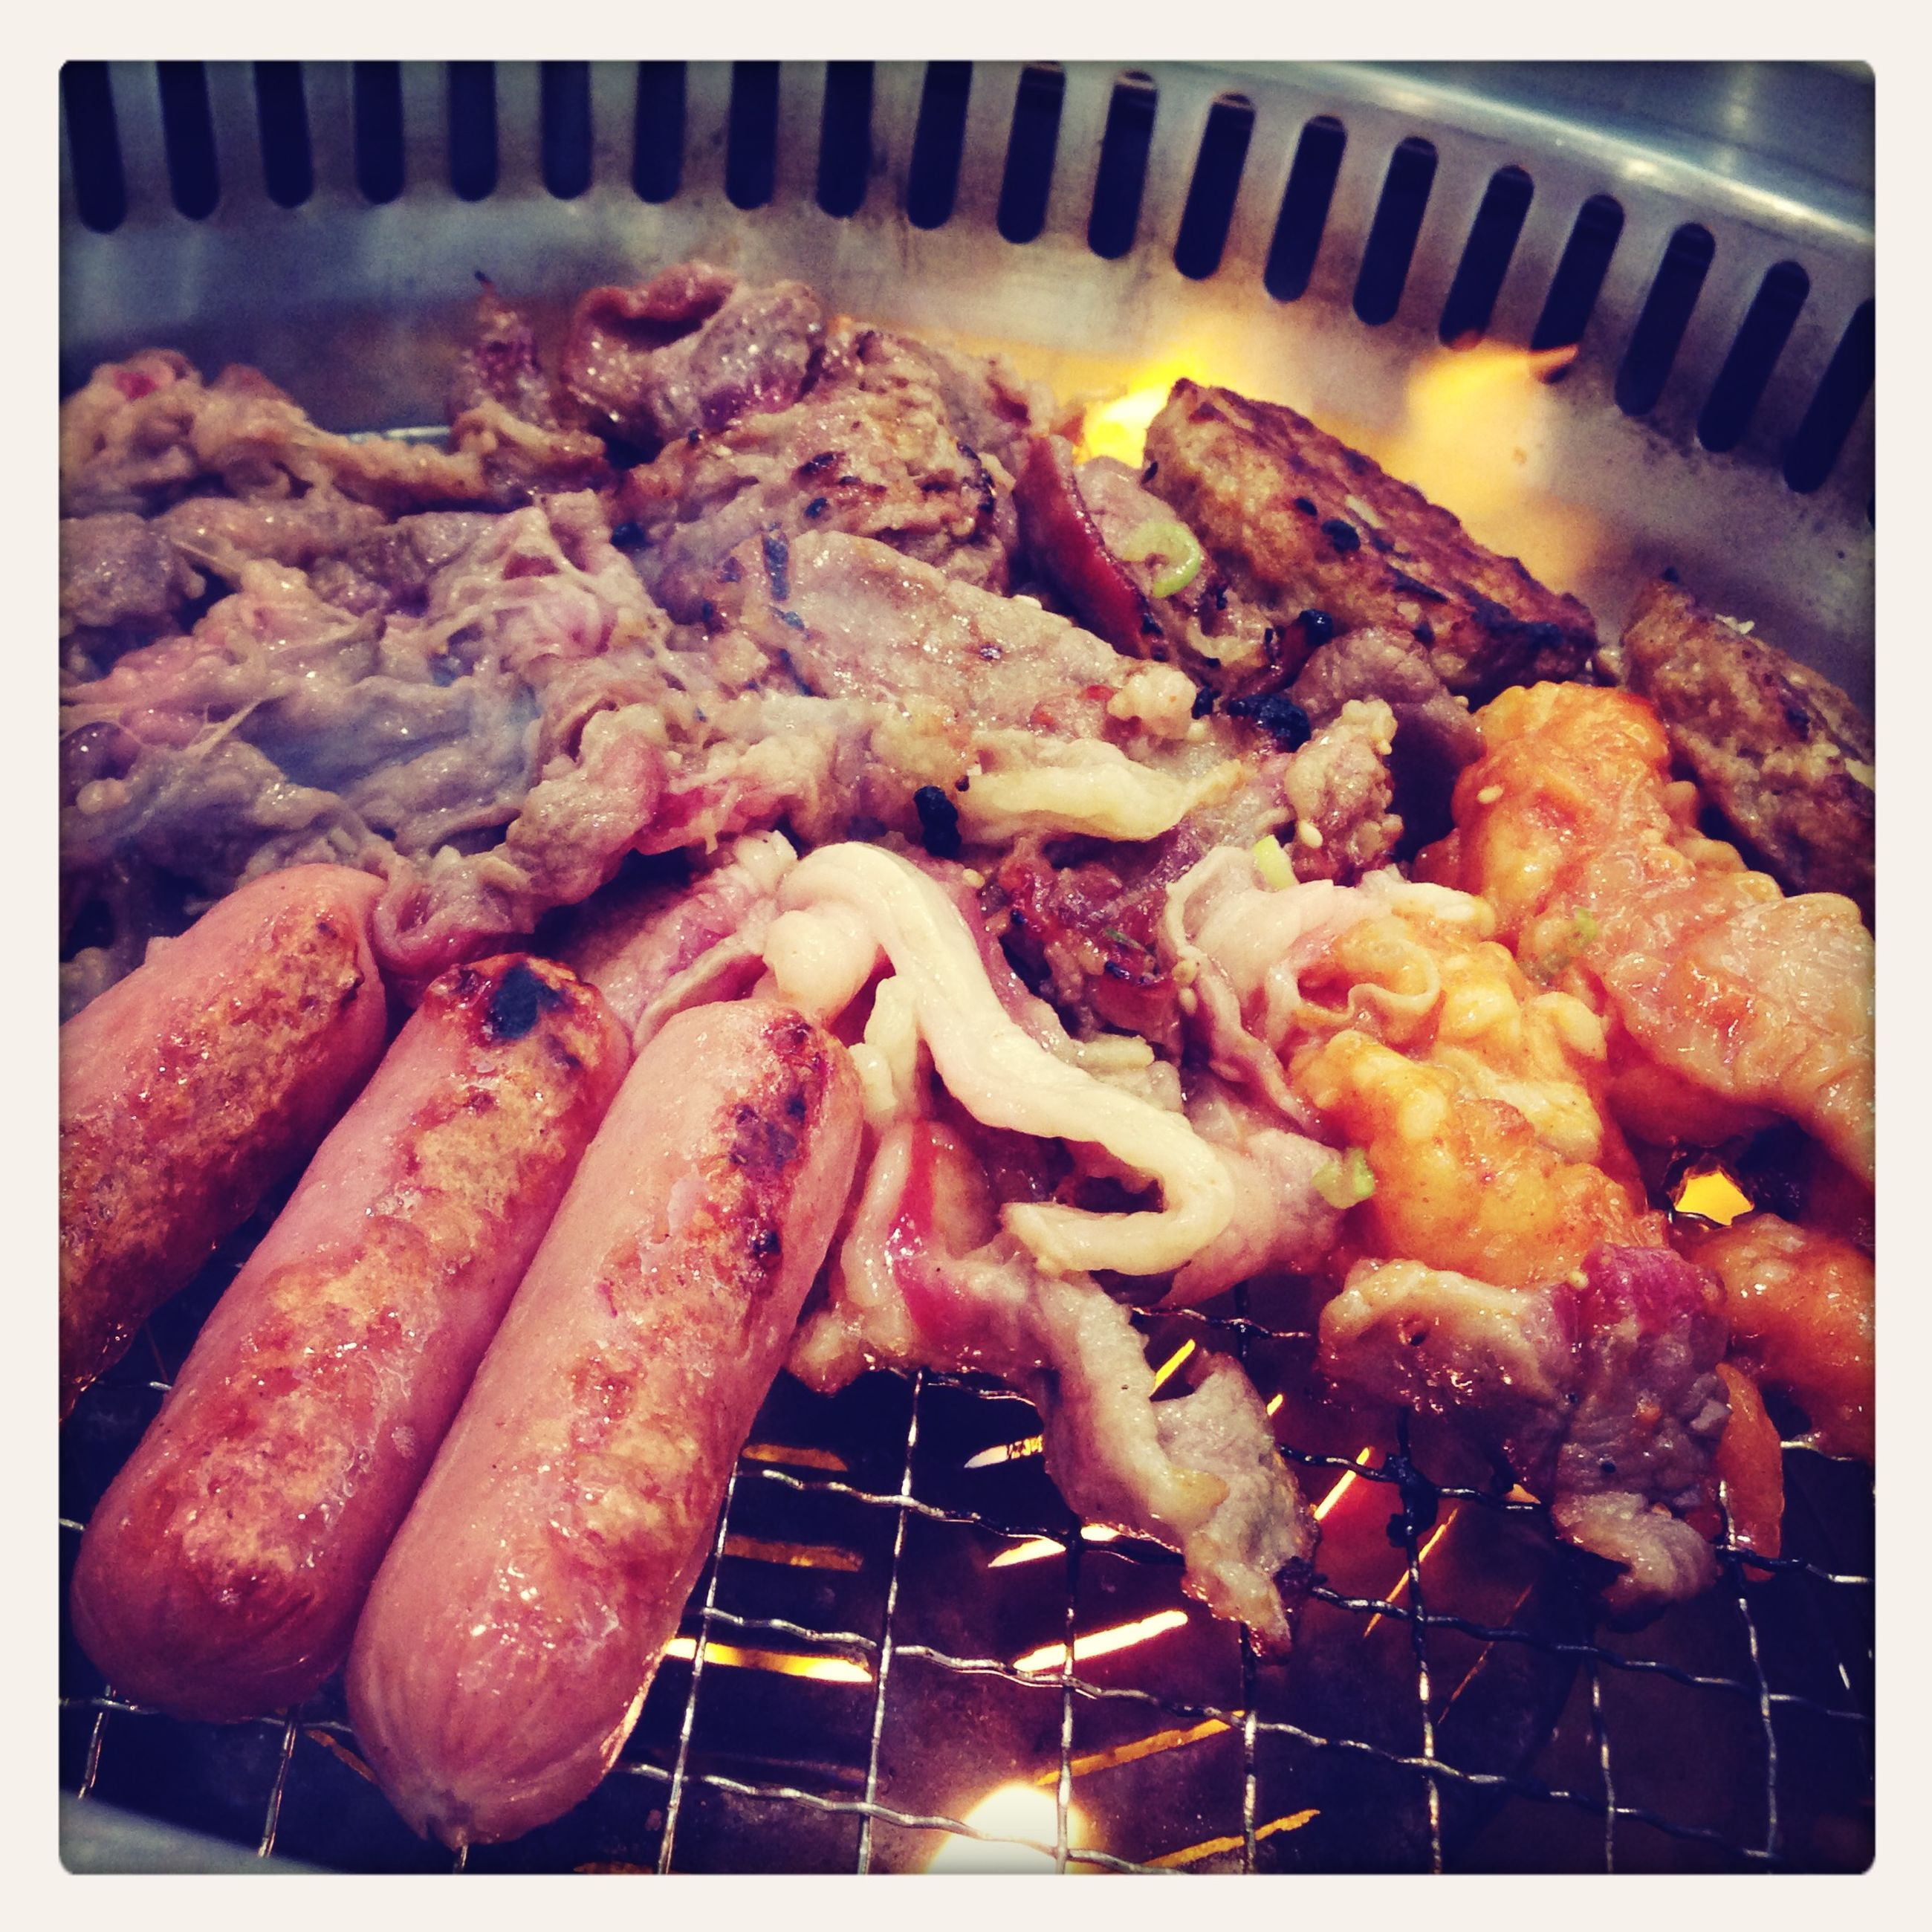 food and drink, food, transfer print, indoors, freshness, meat, grilled, auto post production filter, close-up, barbecue grill, barbecue, high angle view, preparation, still life, cooking, healthy eating, seafood, heat - temperature, roasted, ready-to-eat